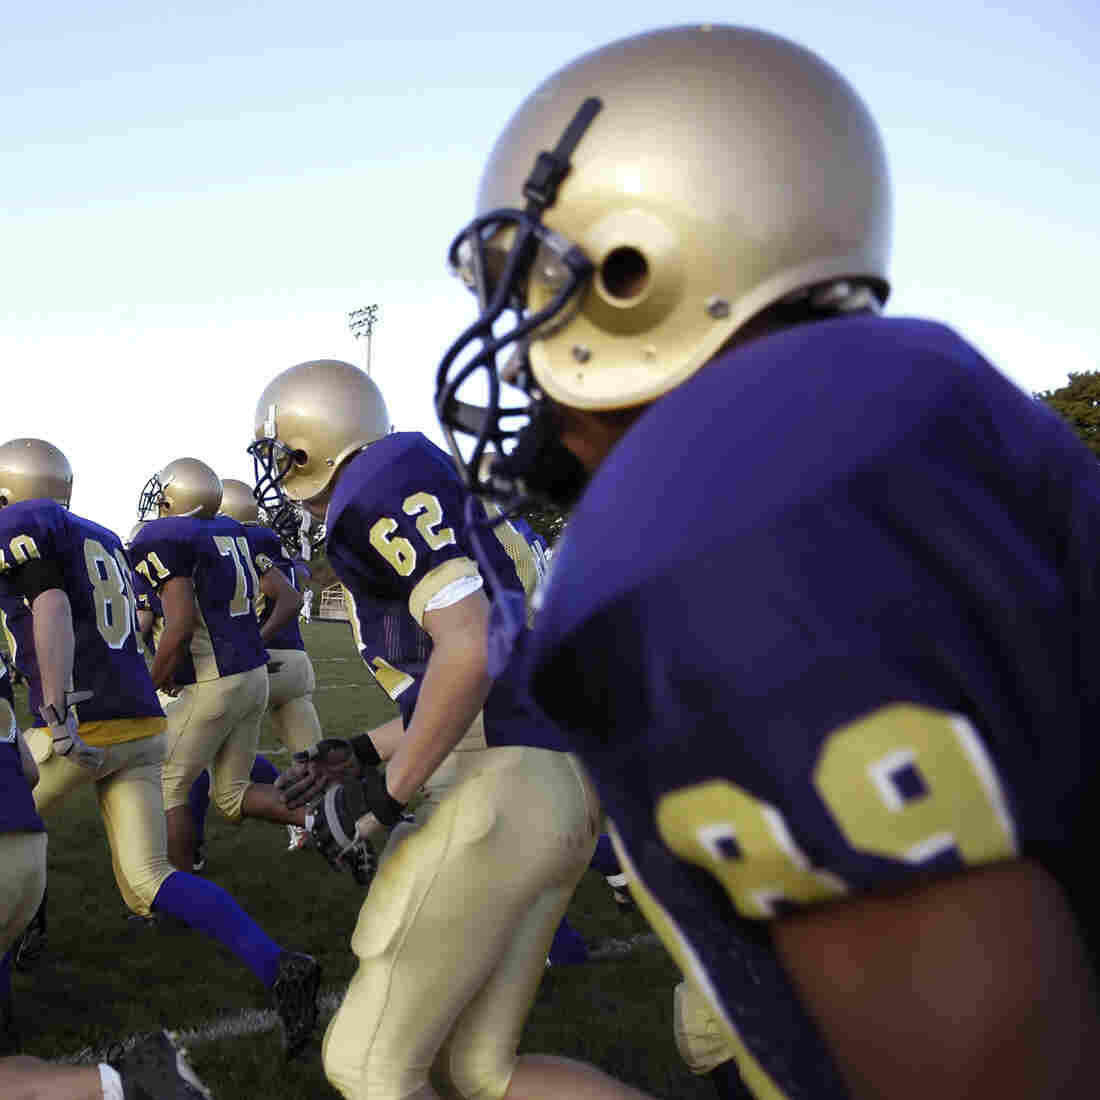 A high school football team charges onto the field.